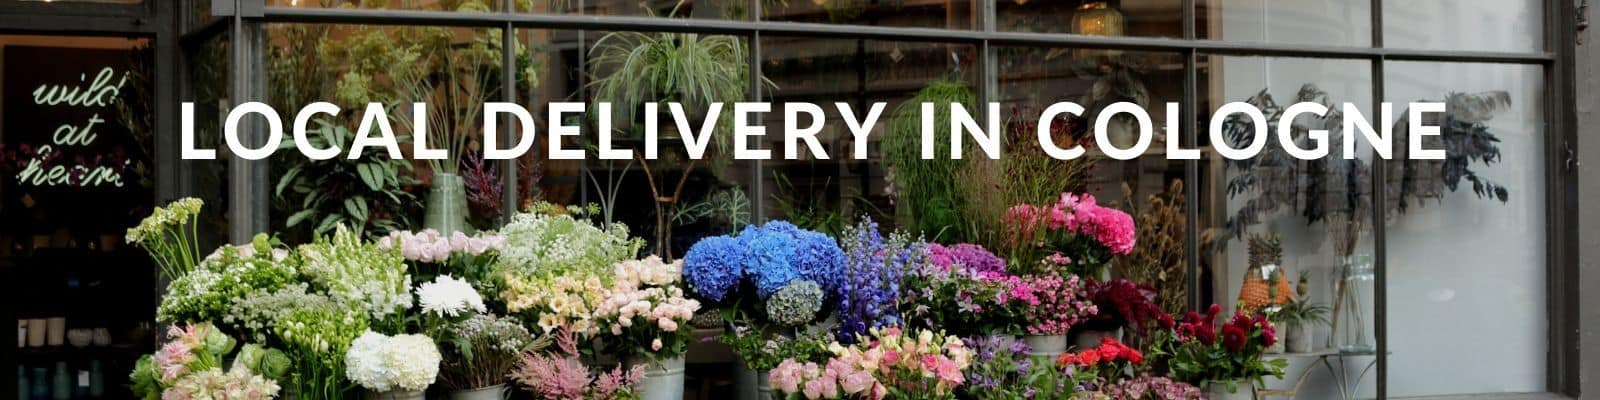 Same Day Flower Delivery Cologne - Send Flowers